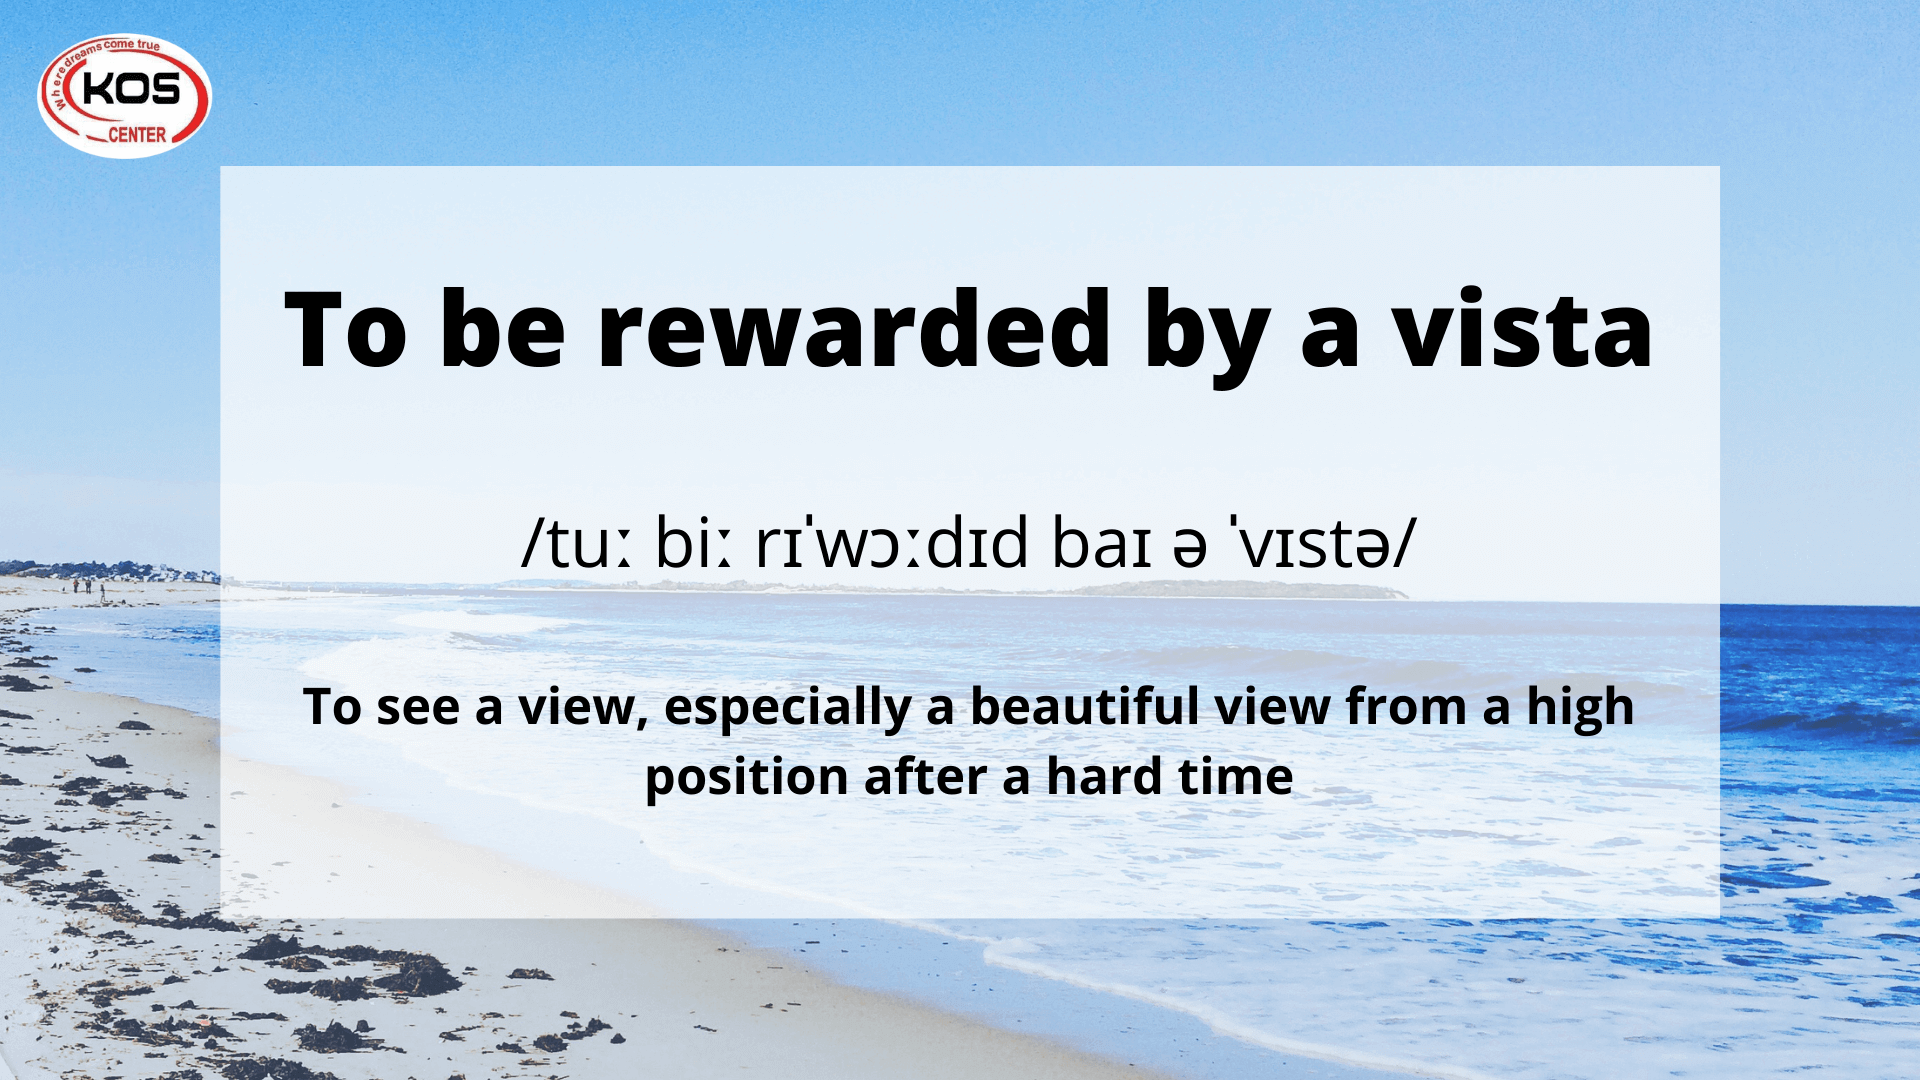 To be rewarded by a vista